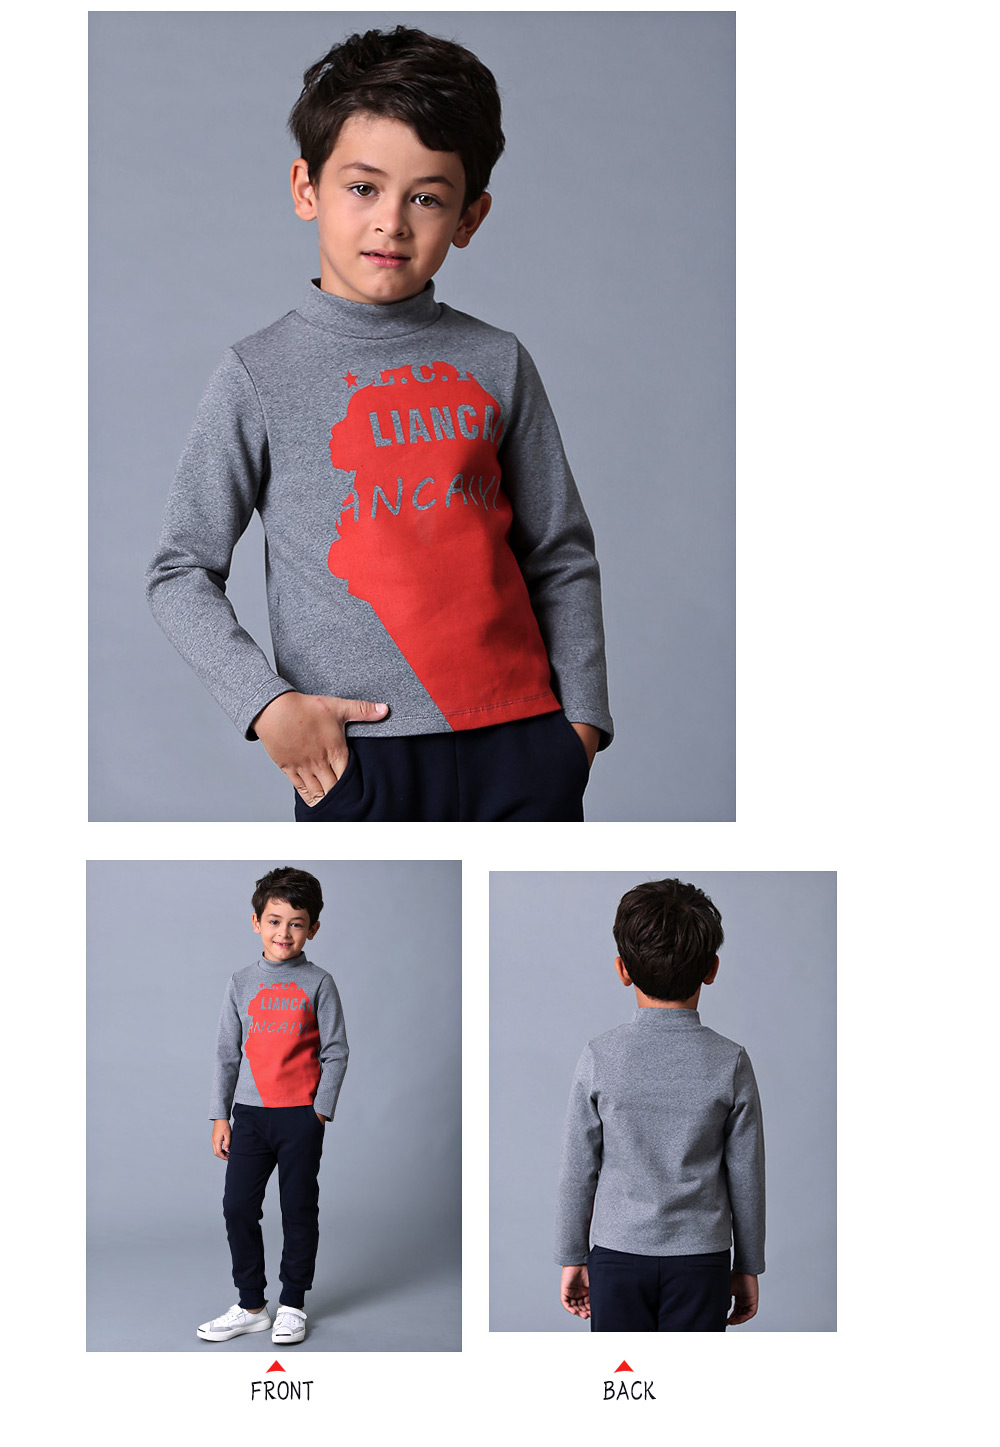 Liancaiyi Turtle Neck Long Sleeve Letter Print Boy T-Shirt